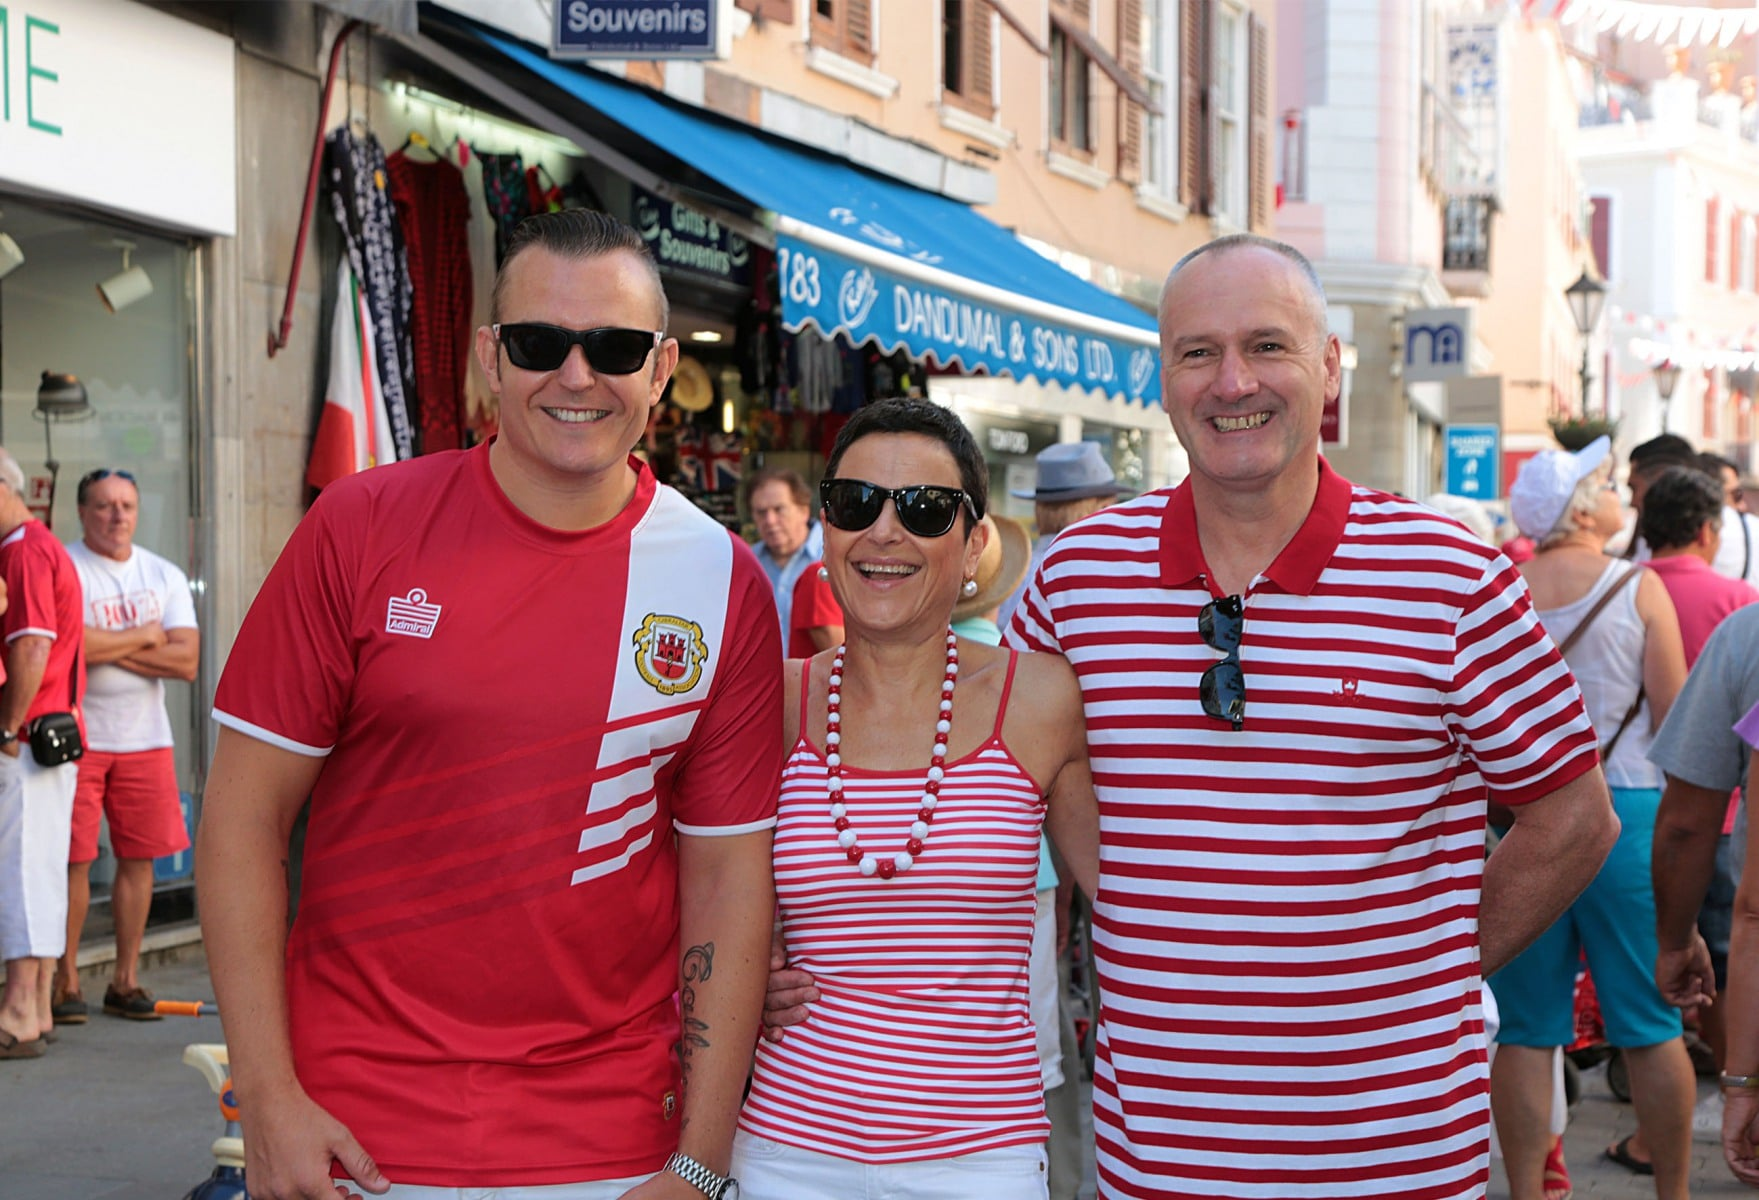 160910-national-day-gibraltar-2016-102_29494991242_o